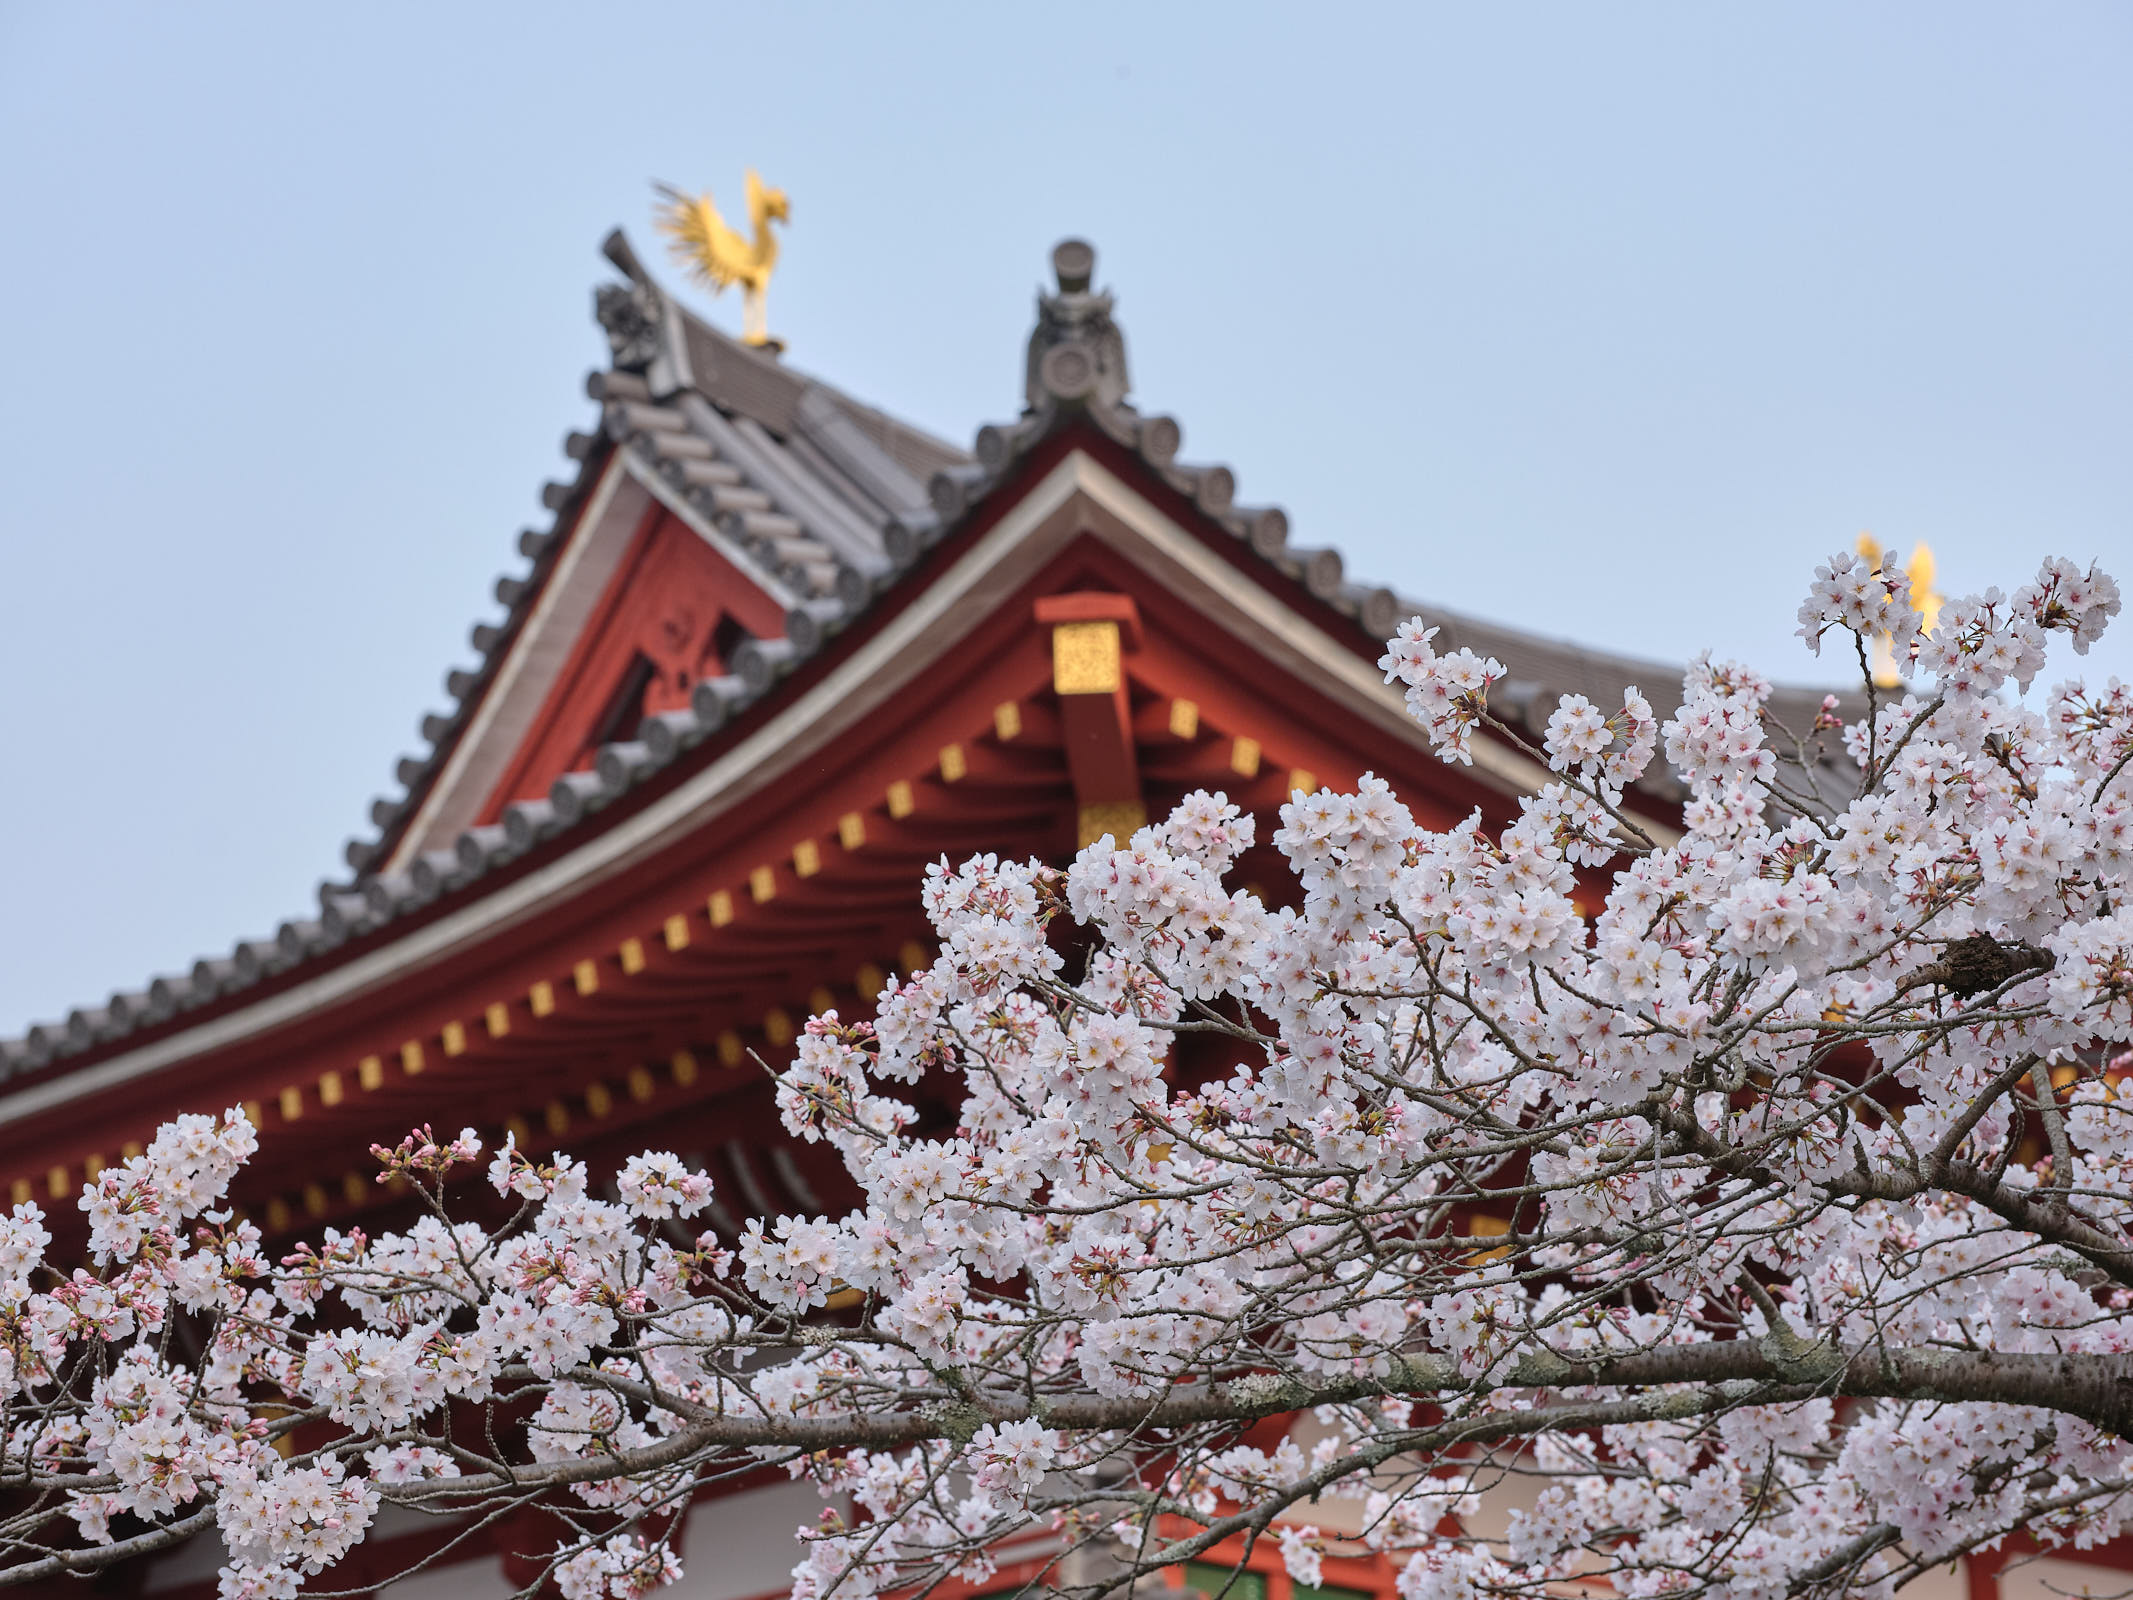 Sakura flowers in front of temple, Kyoto